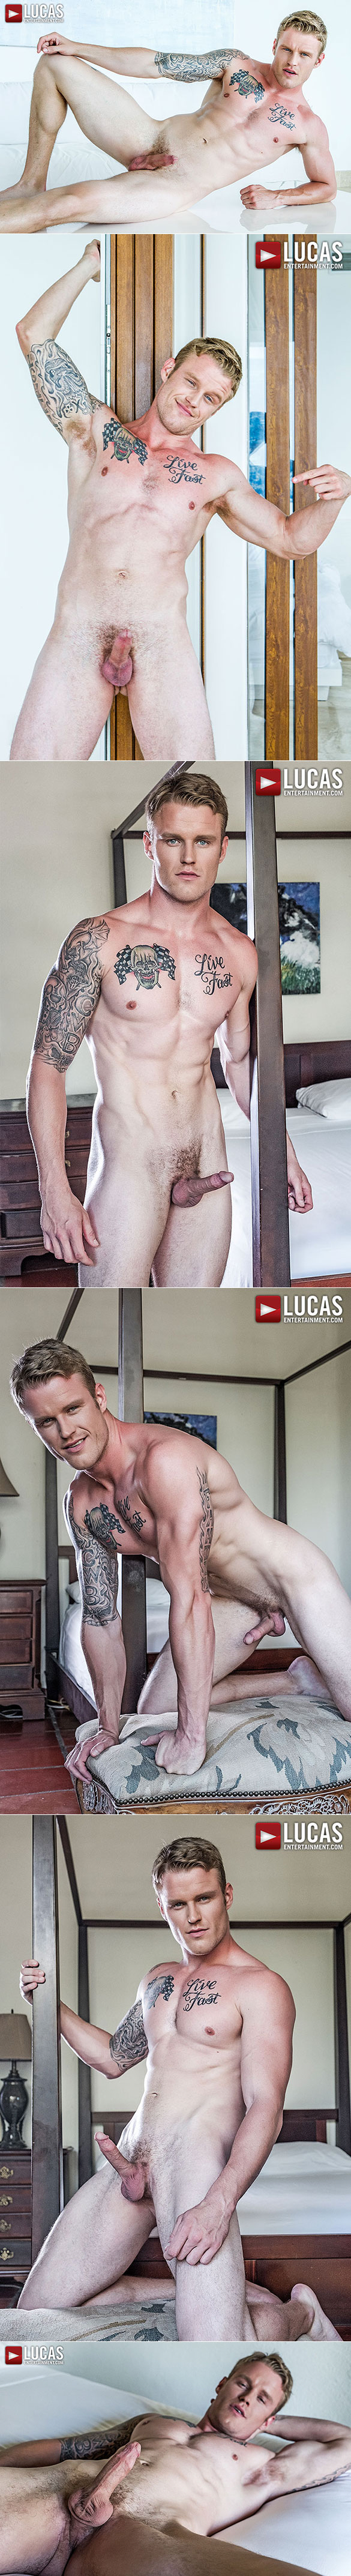 """Lucas Entertainment: Shawn Reeve rides muscle daddy Tomas Brand bareback in """"Bottom Boy Bitches"""""""